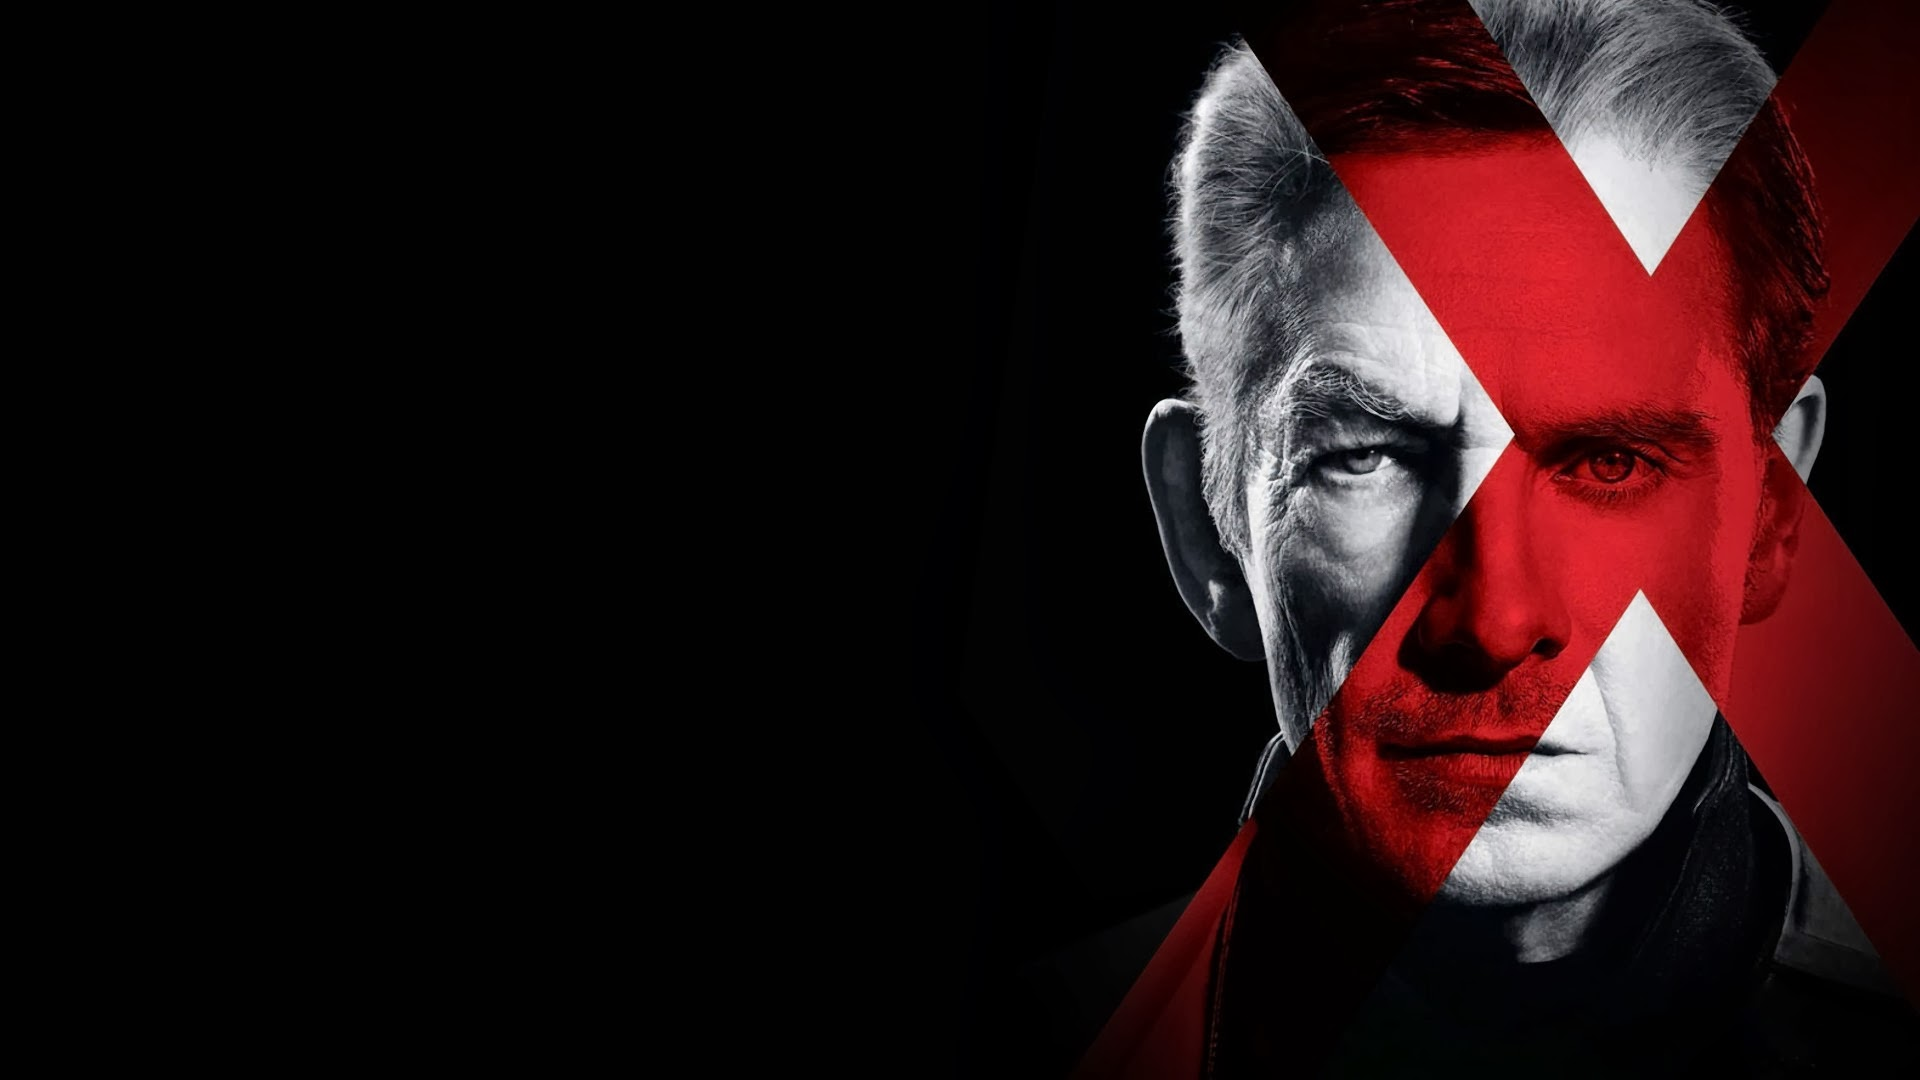 gallery for magneto wallpaper